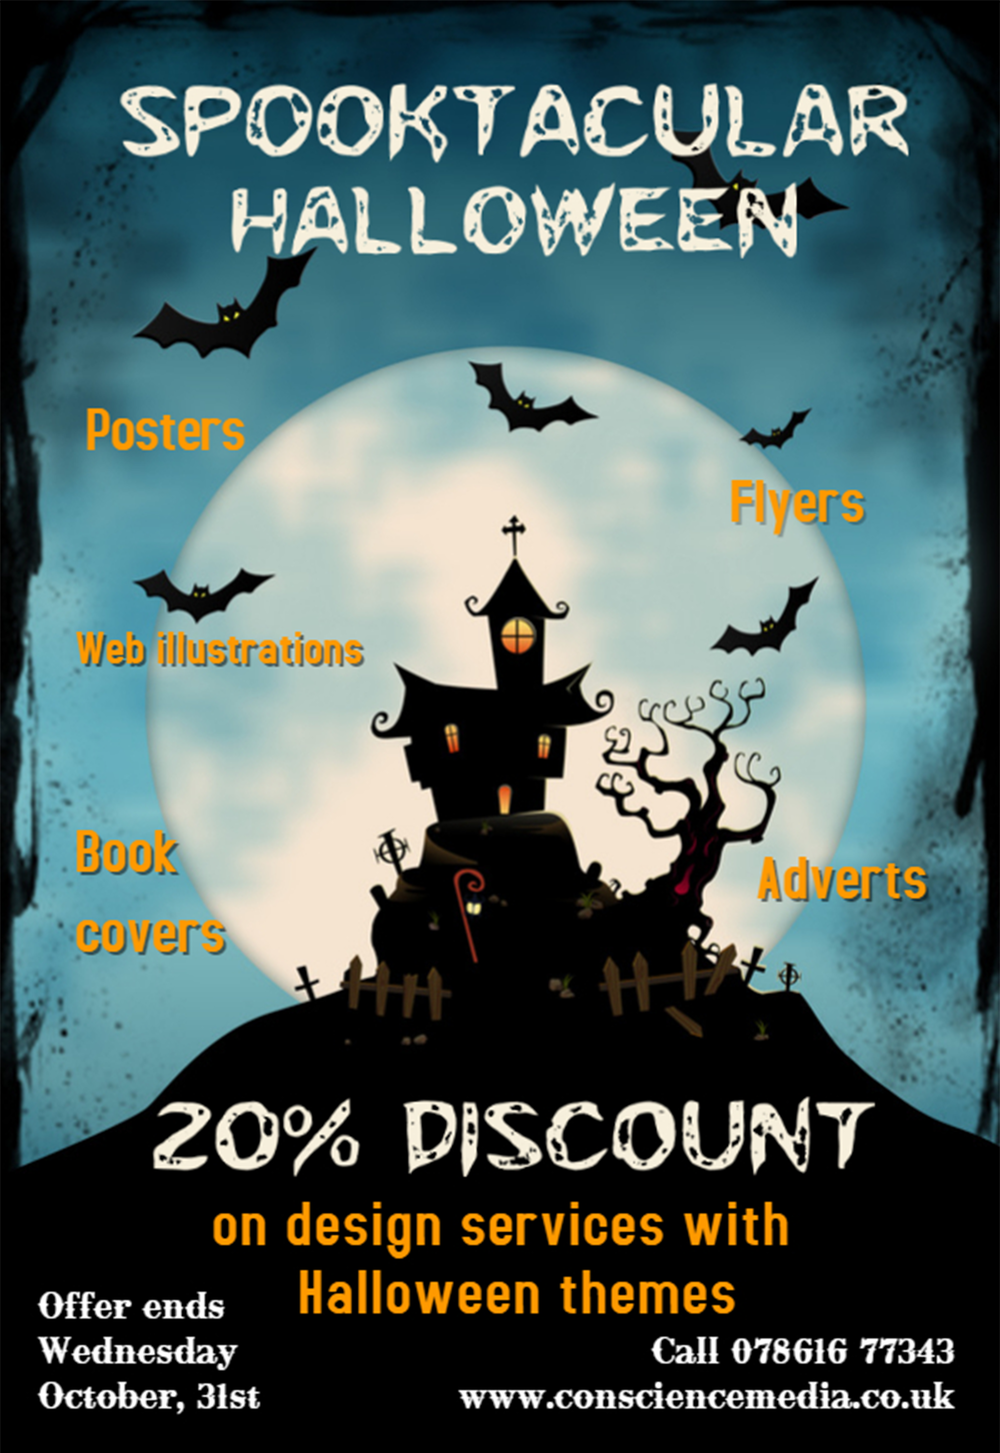 Need to advertise a Halloween event or party? - Check out our special offer on all Halloween themed ads.